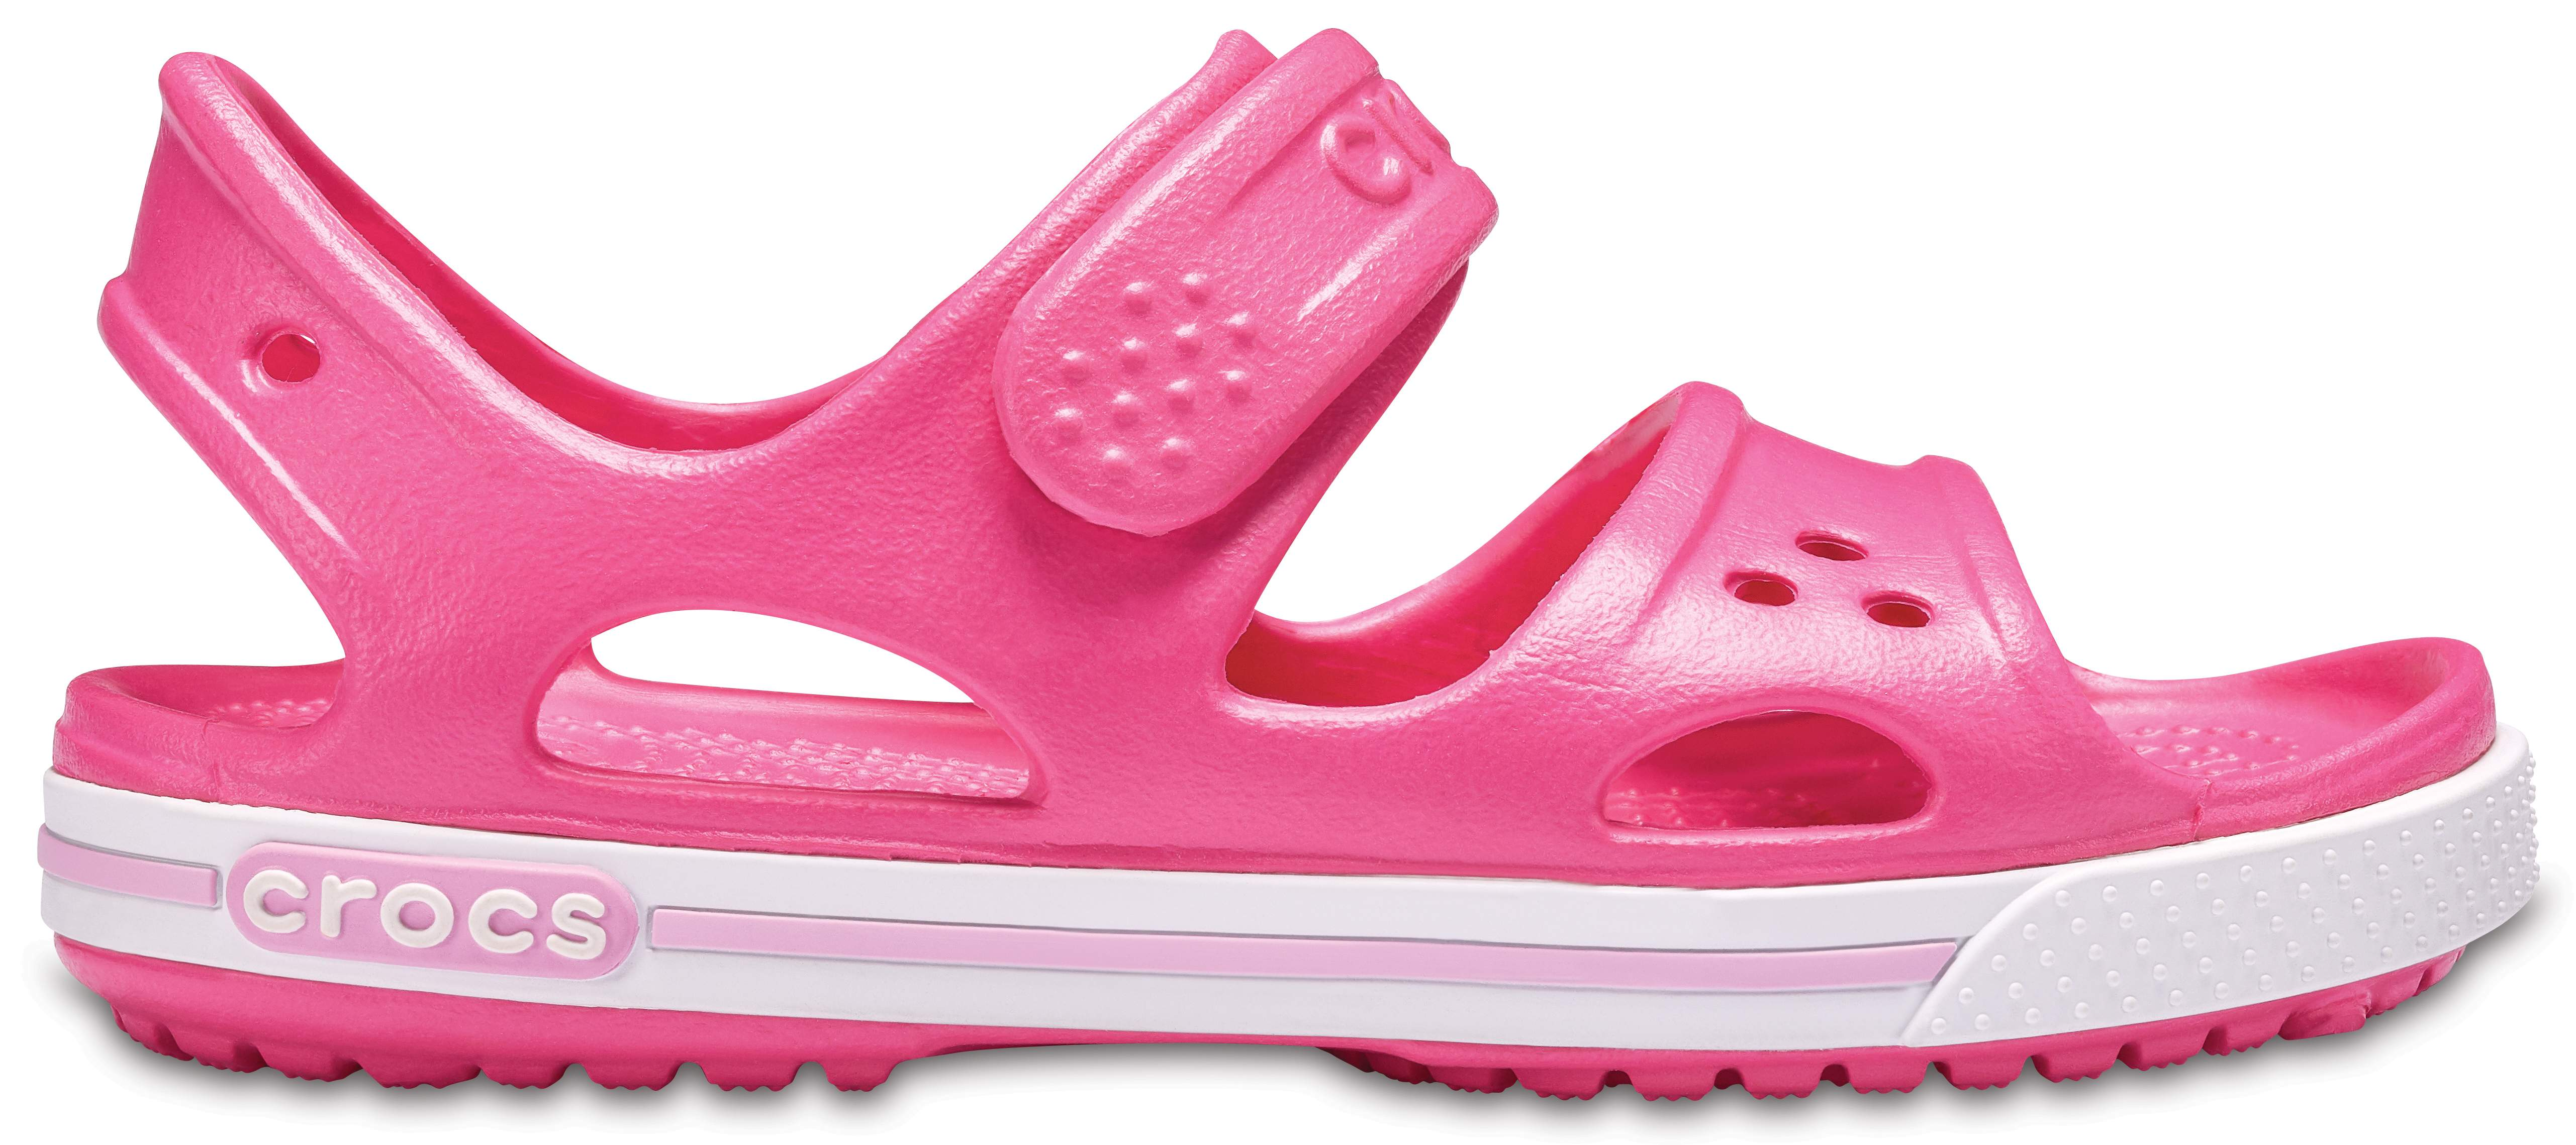 7 US Toddler Water Shoes Slip On Shoes for Boys and Girls Paradise Pink//C Crocs Kids Crocband II Sandal